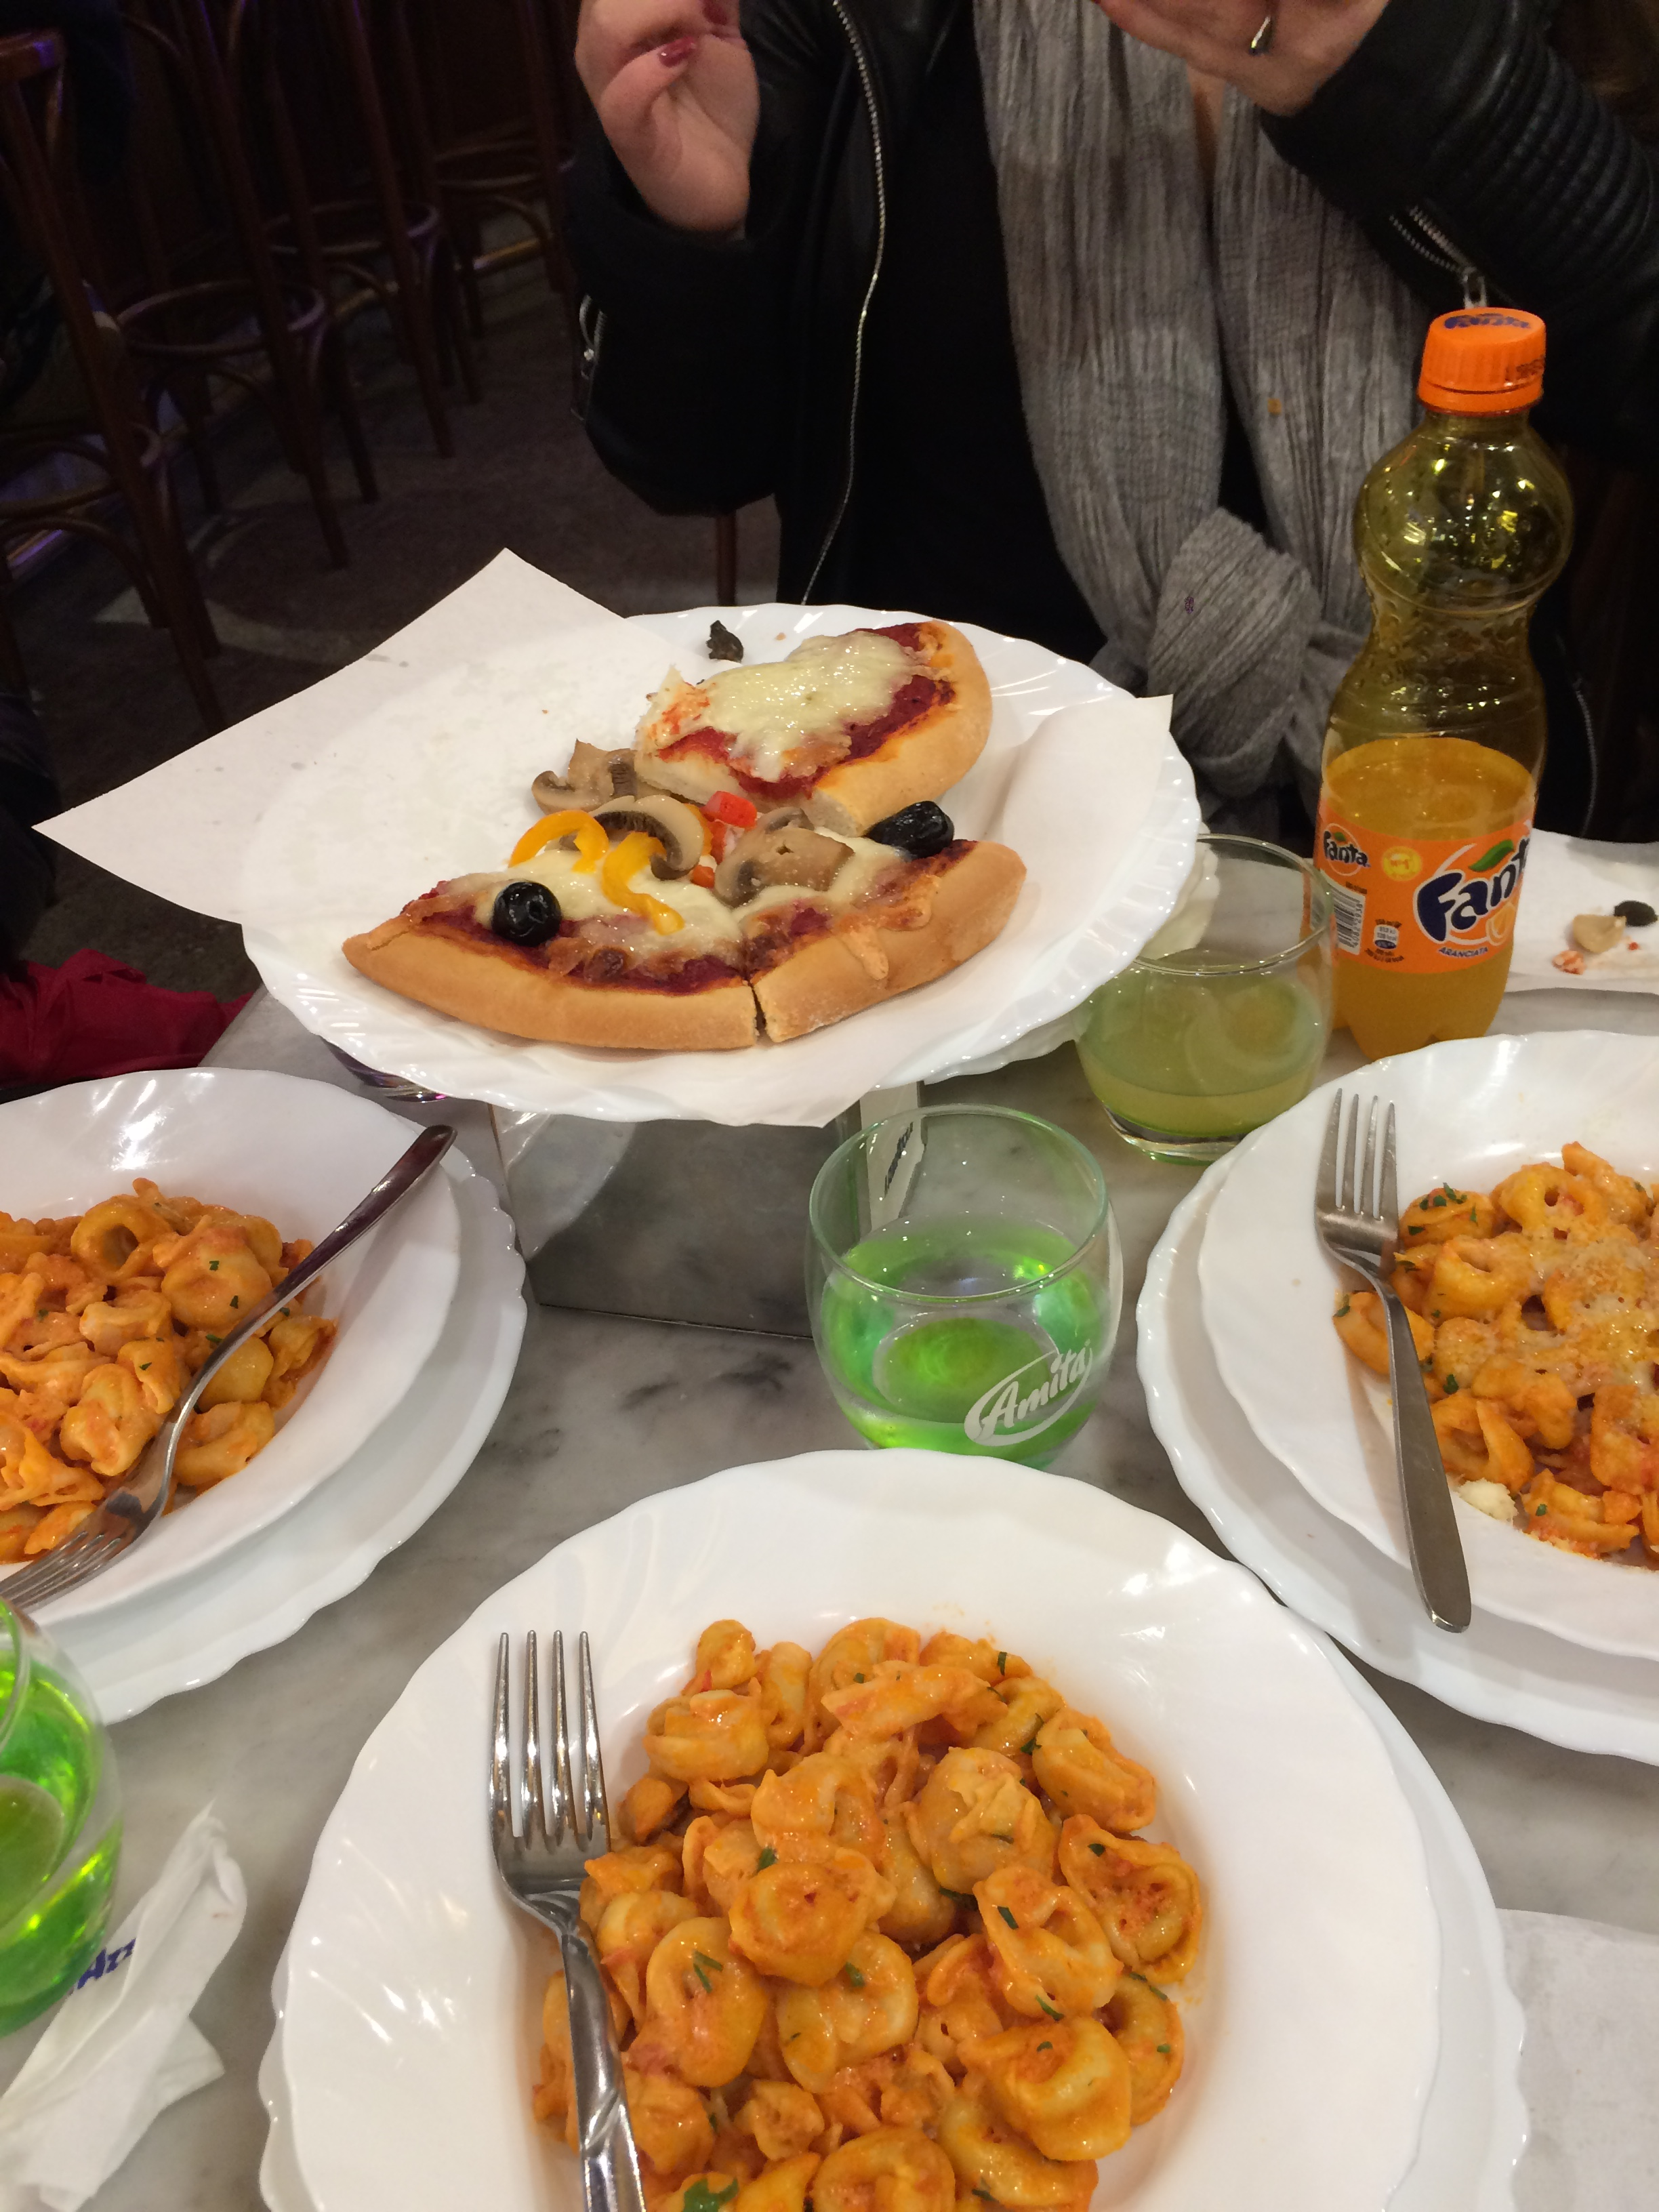 Image of pasta and pizza